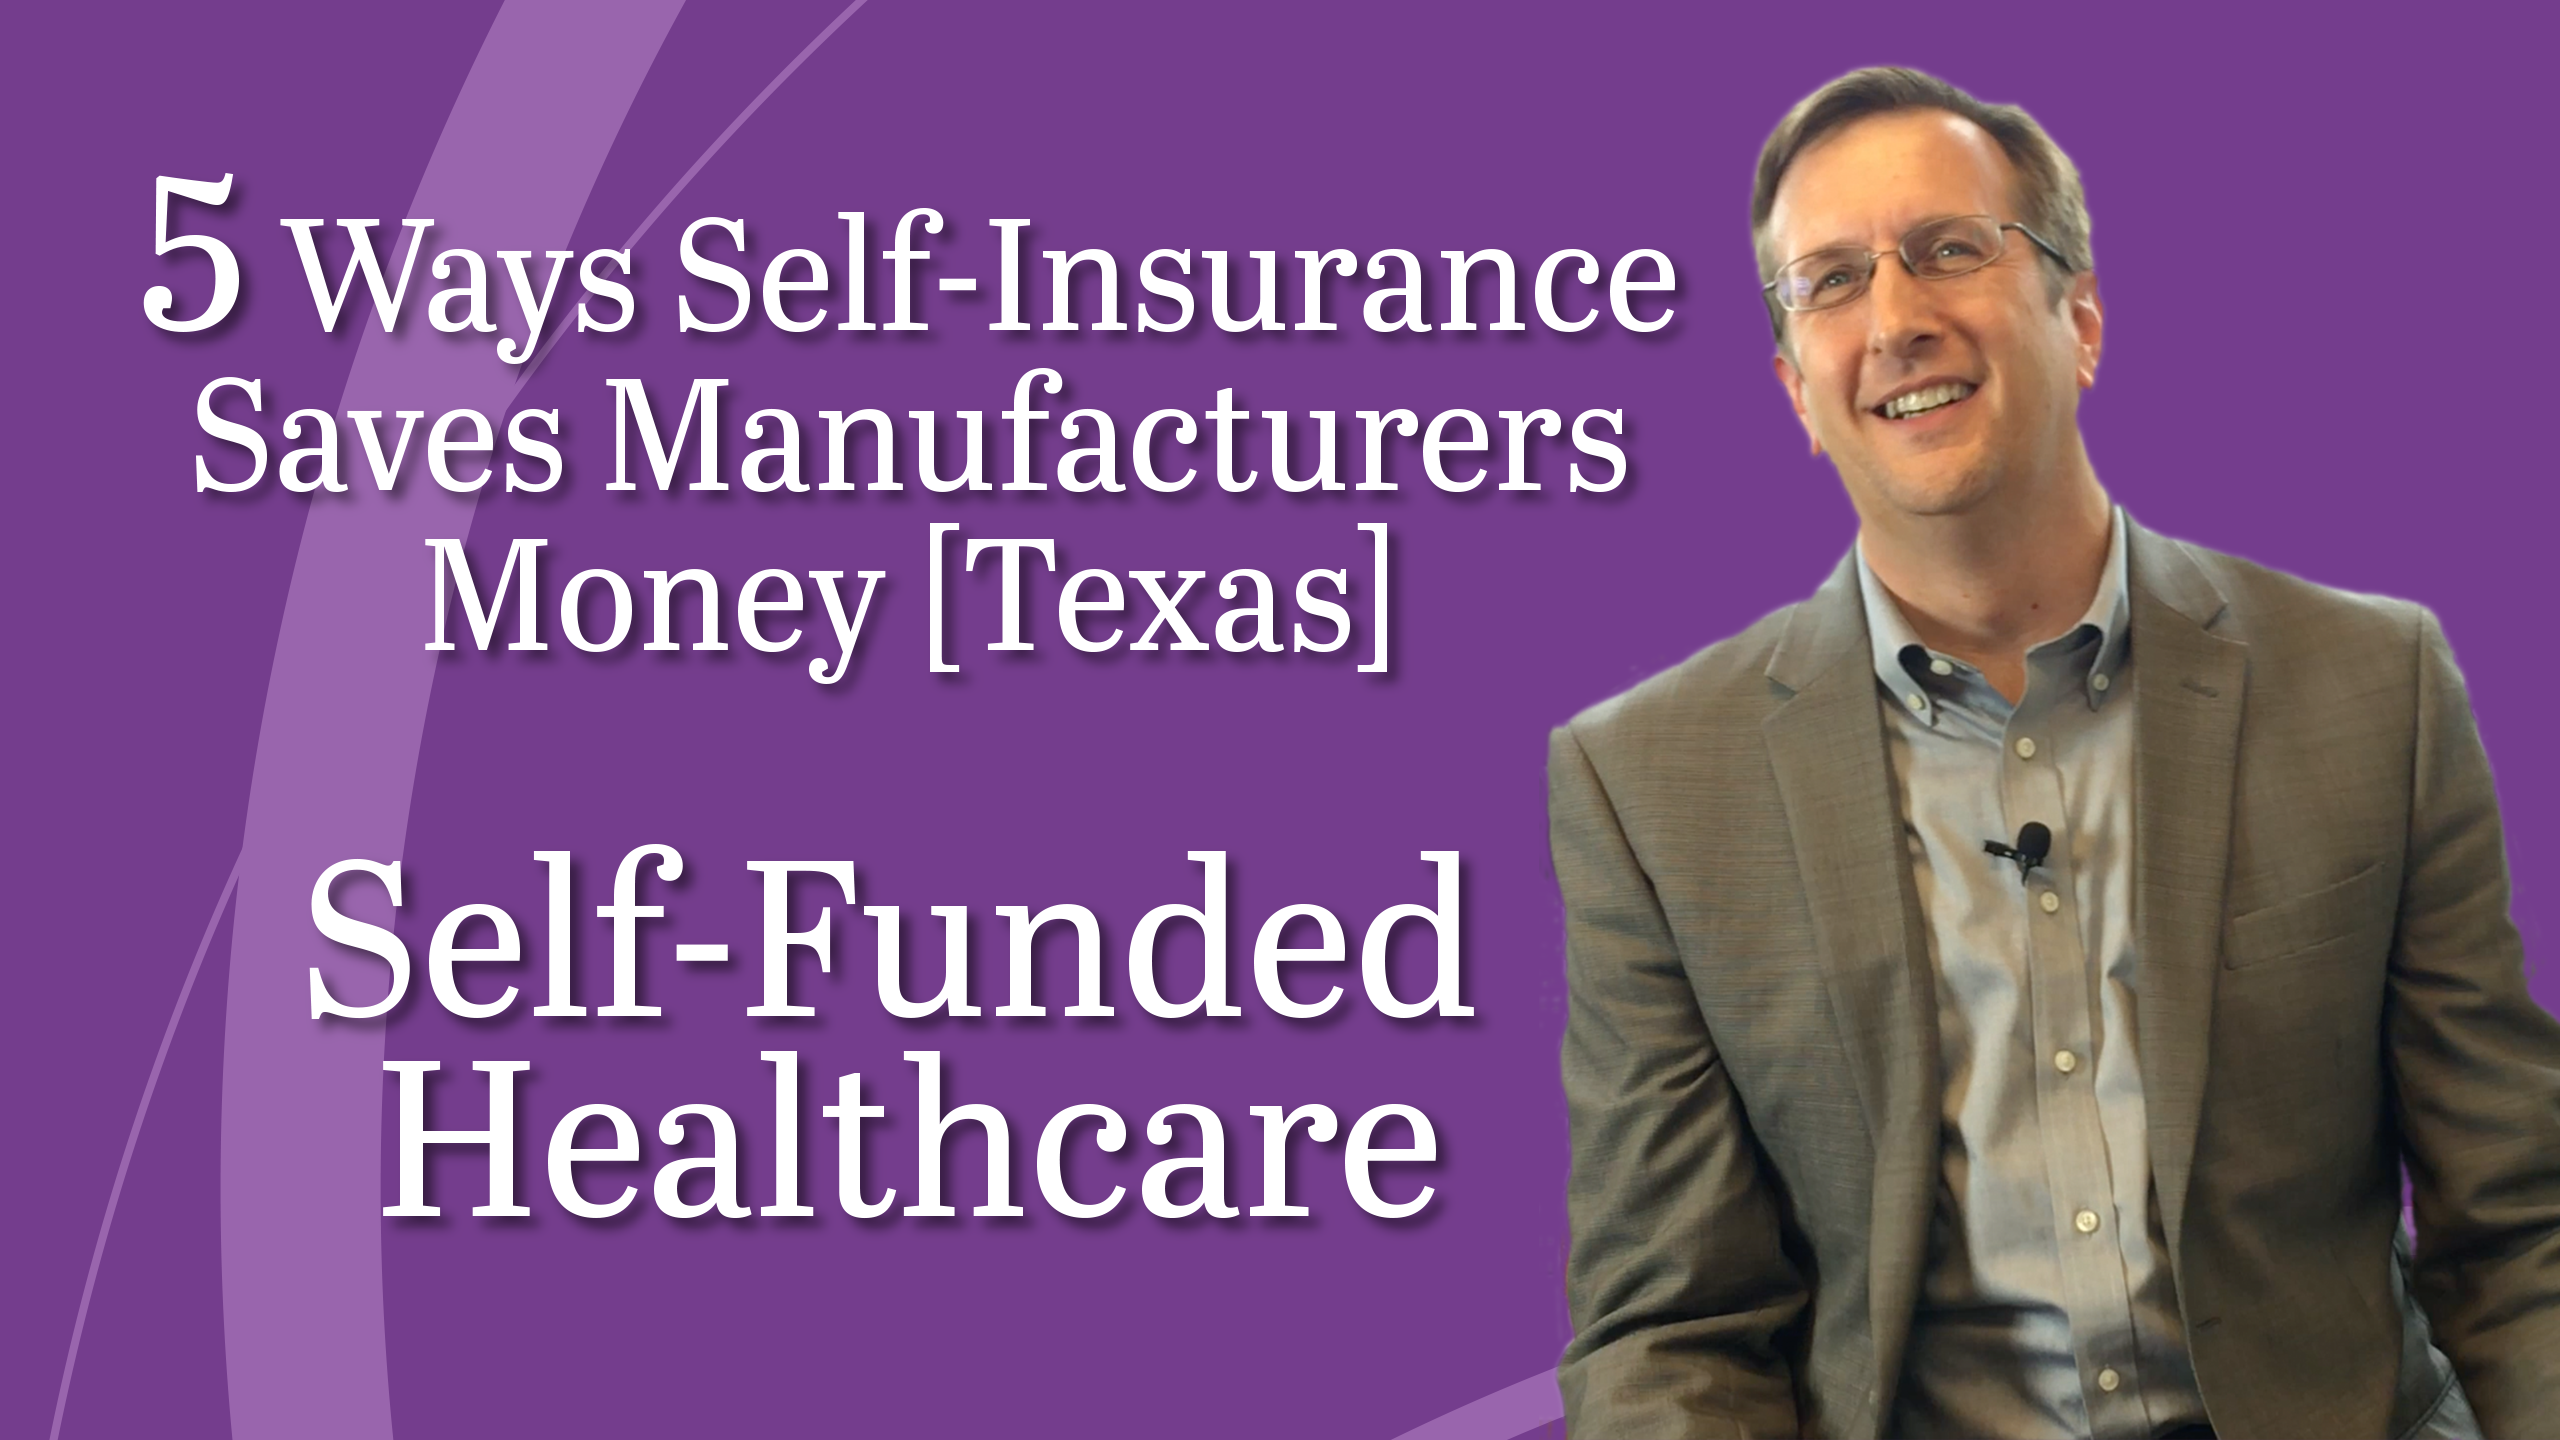 Pin by The Texas Insurance Guys on Texas Insurance Guys